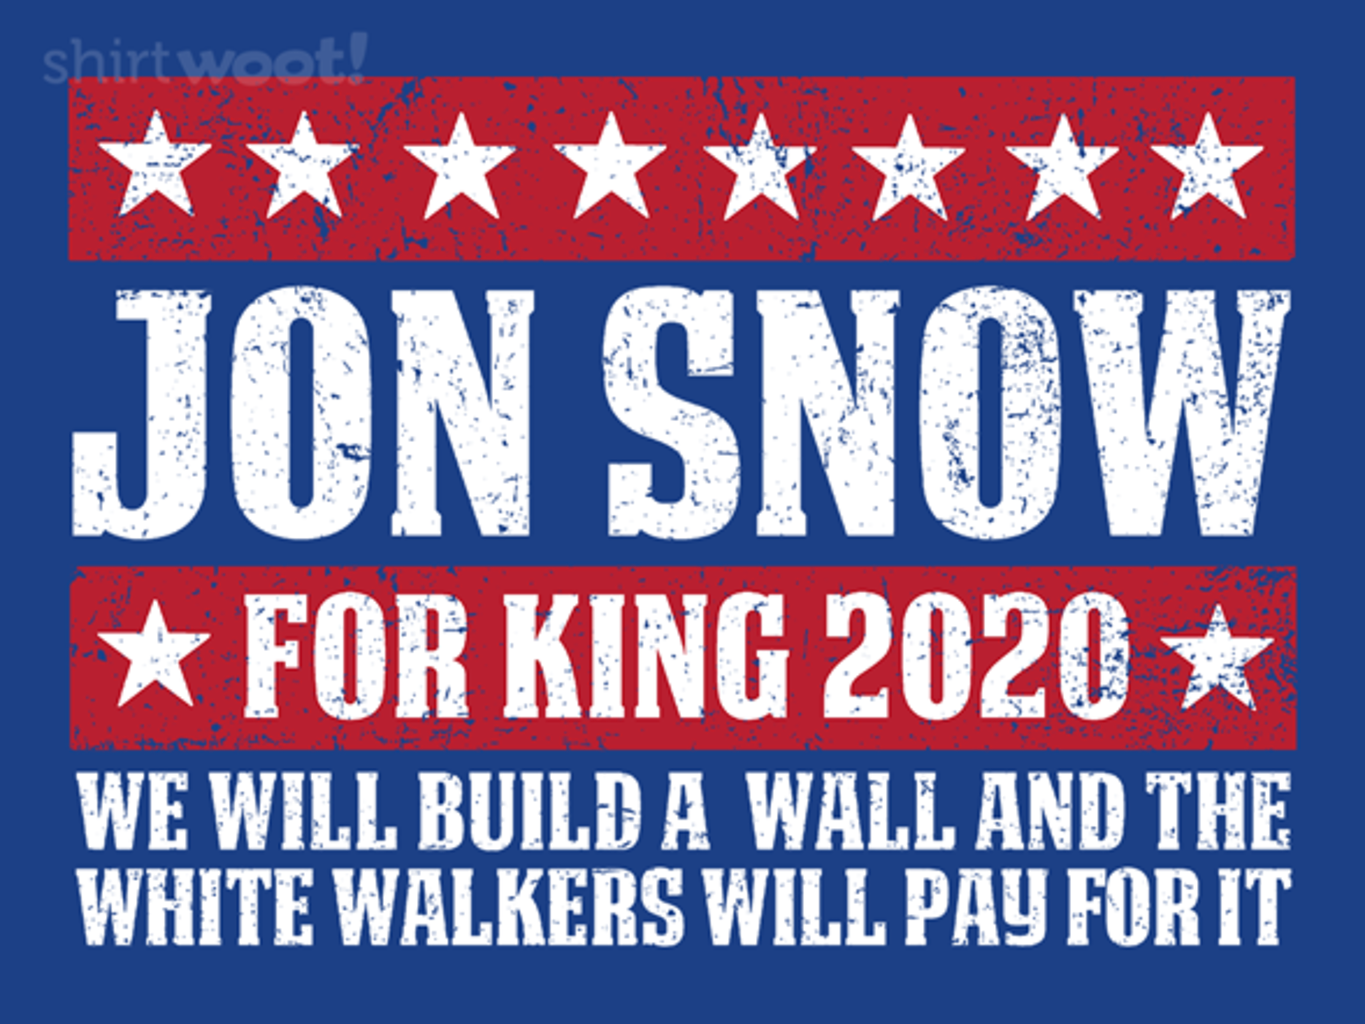 Woot!: Snow 2020